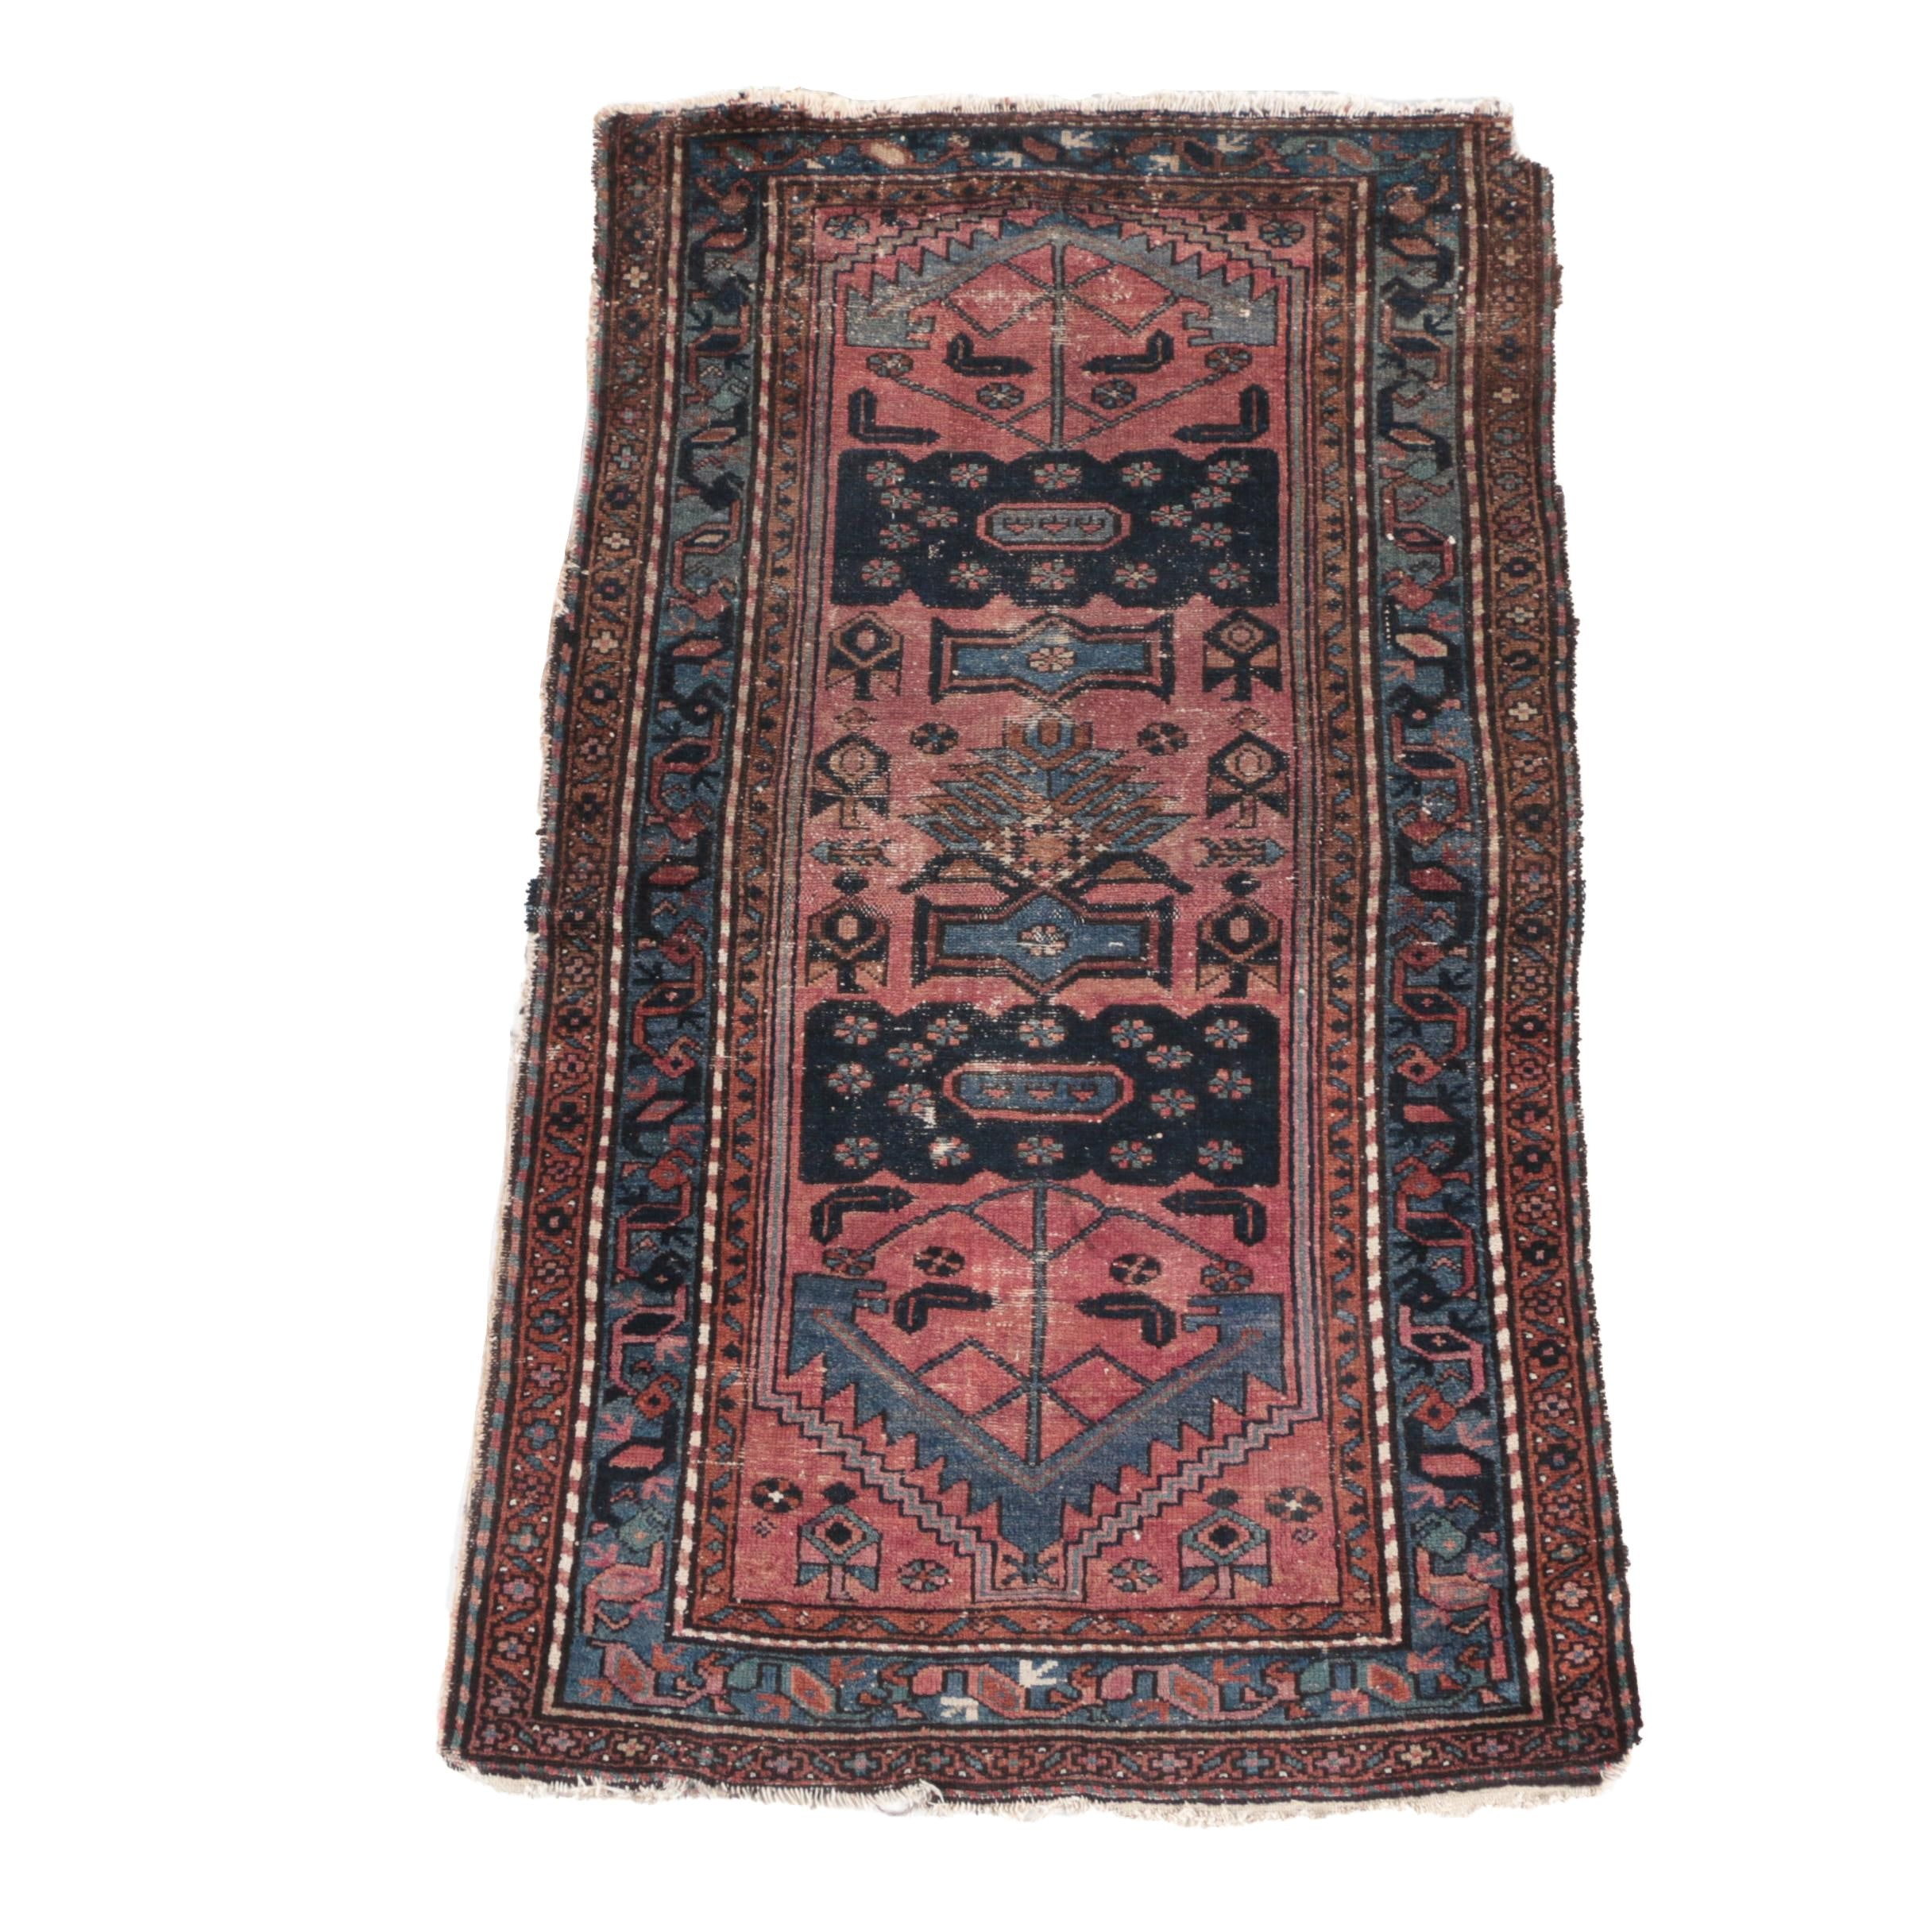 Antique Hand-Knotted Persian Village Area Rug